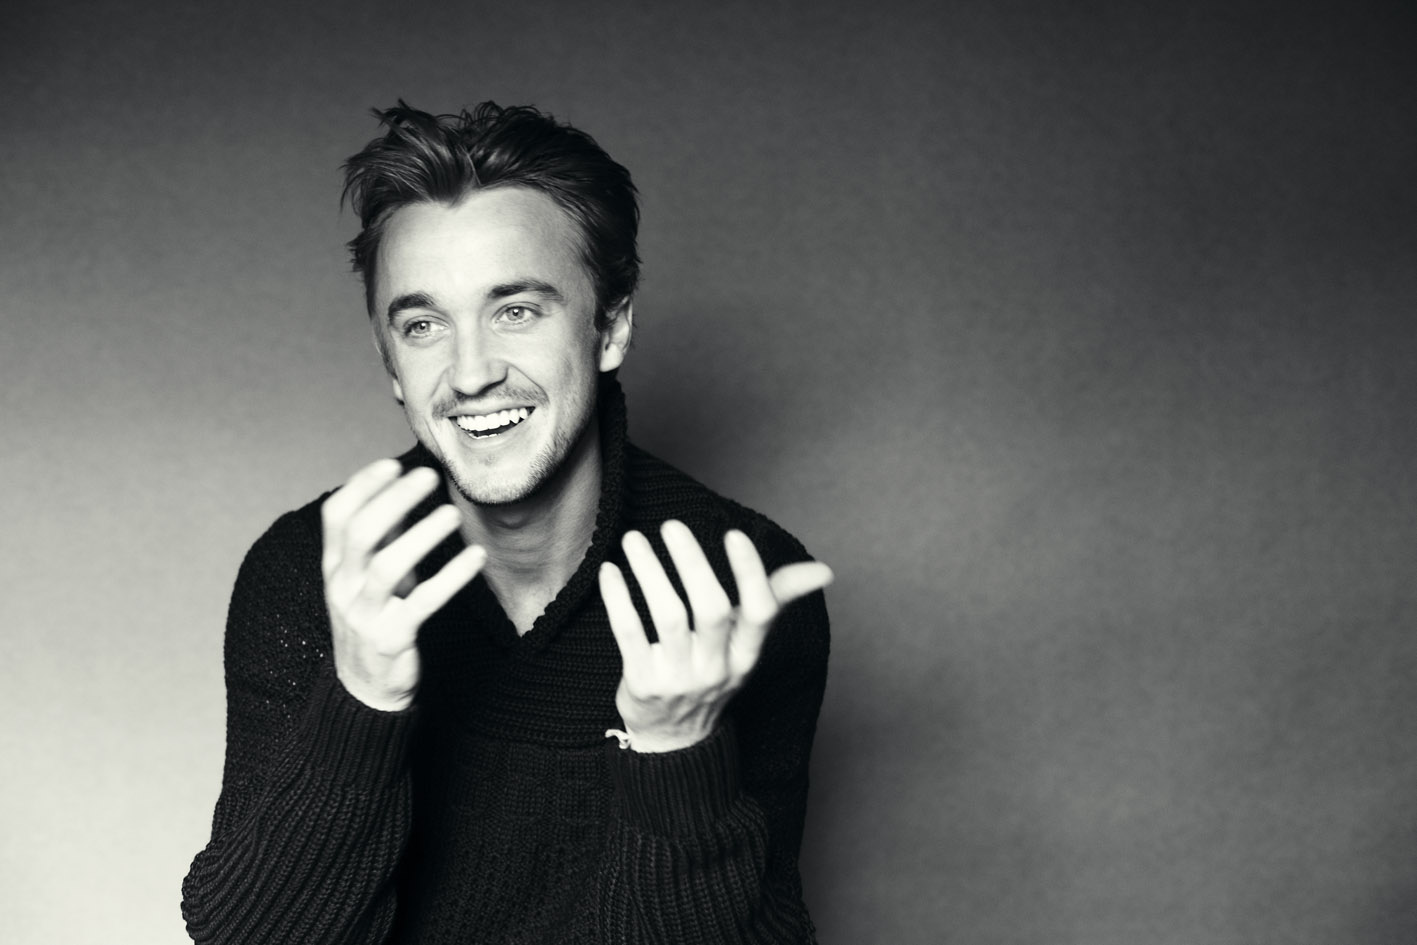 Tom Felton photo 93 of 295 pics, - 138.4KB